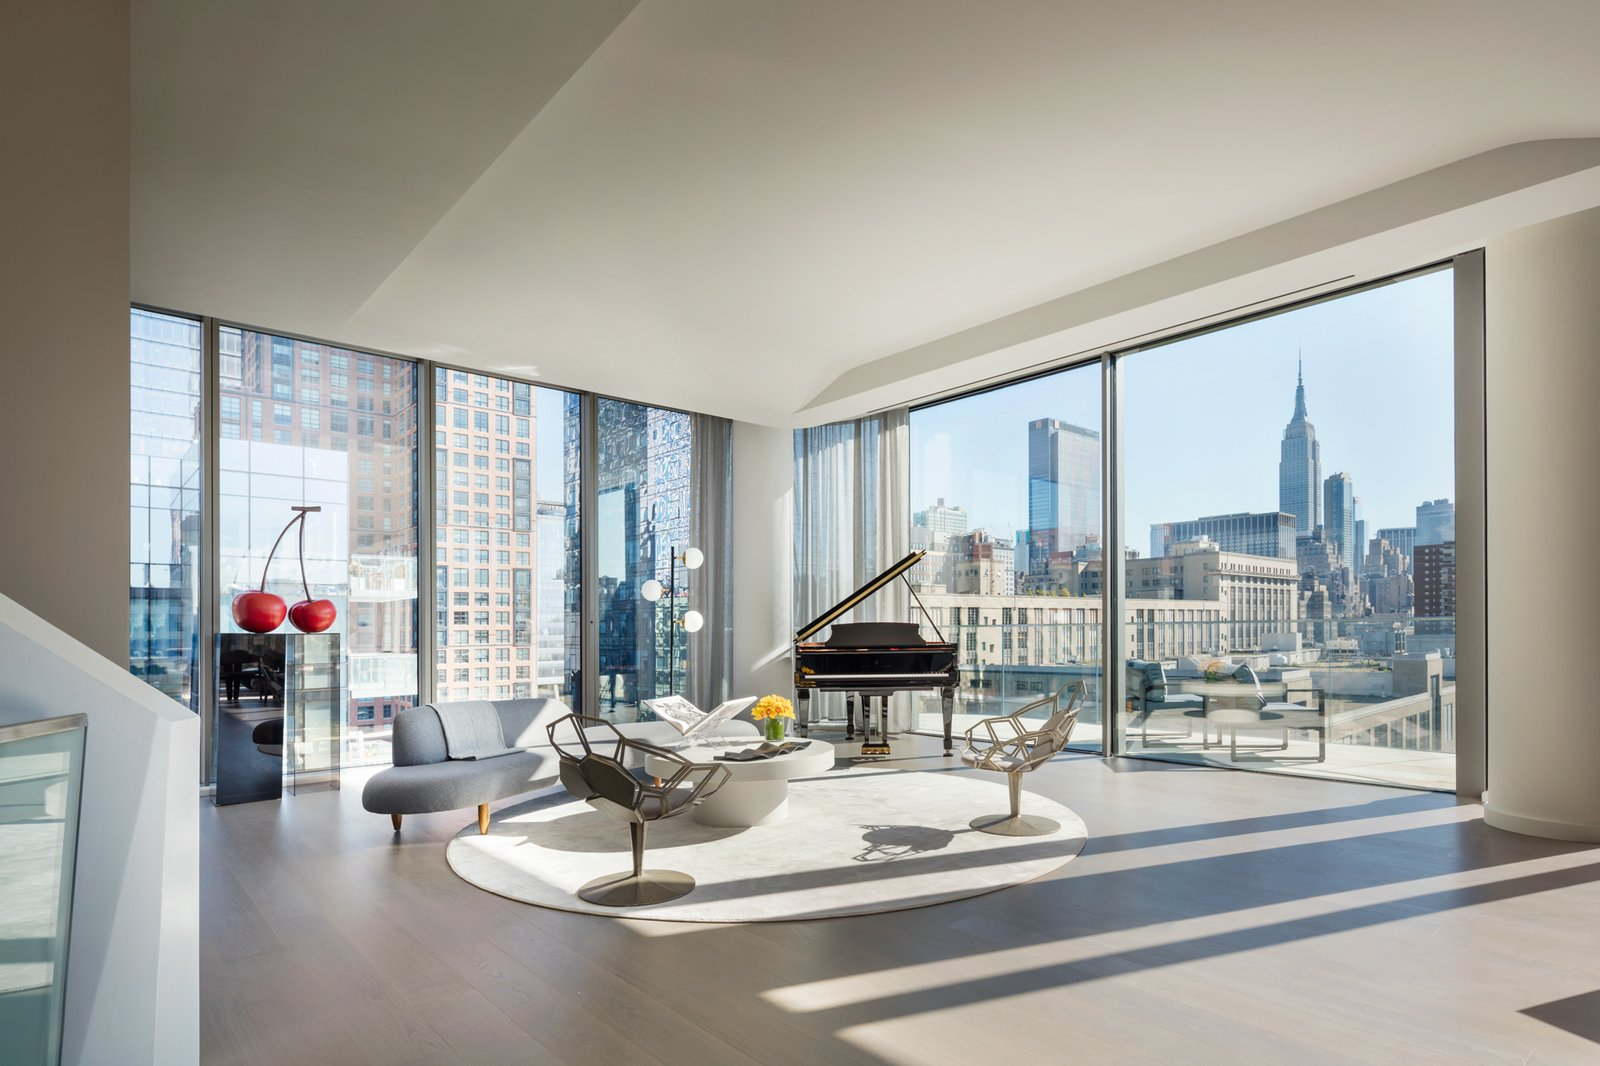 Zaha Hadid New York Penthouse living area